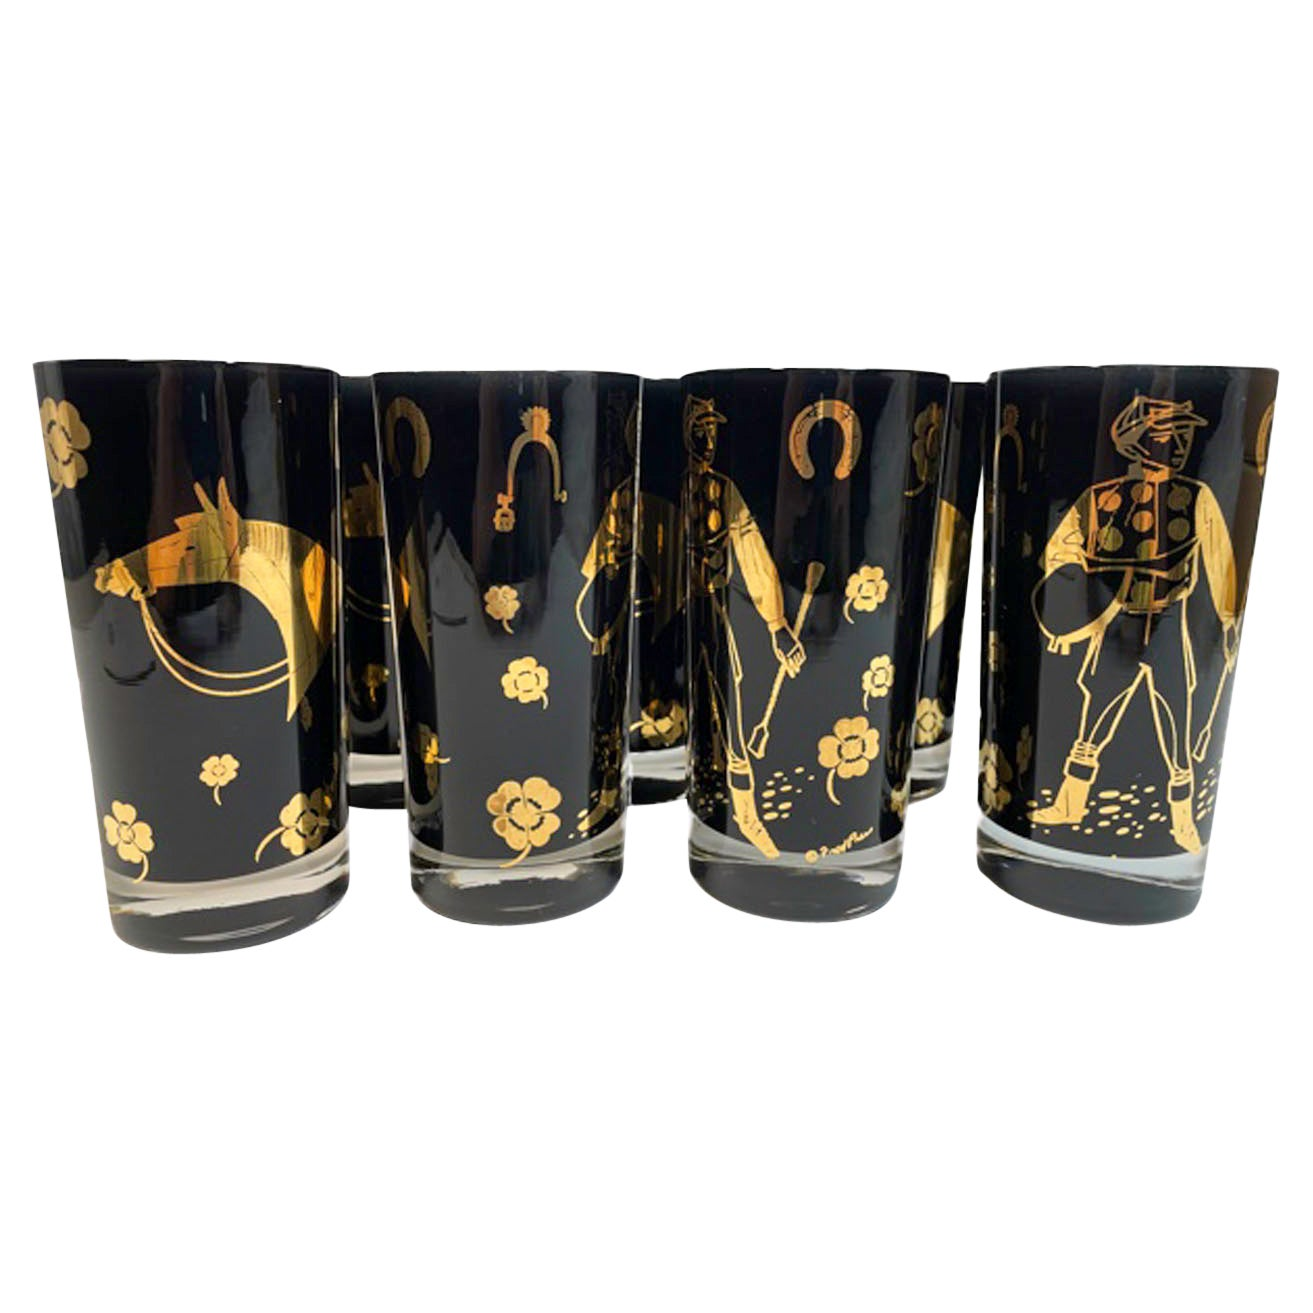 8 Vintage Fred Press Derby Time Highball Glasses with Black Frosted Interiors